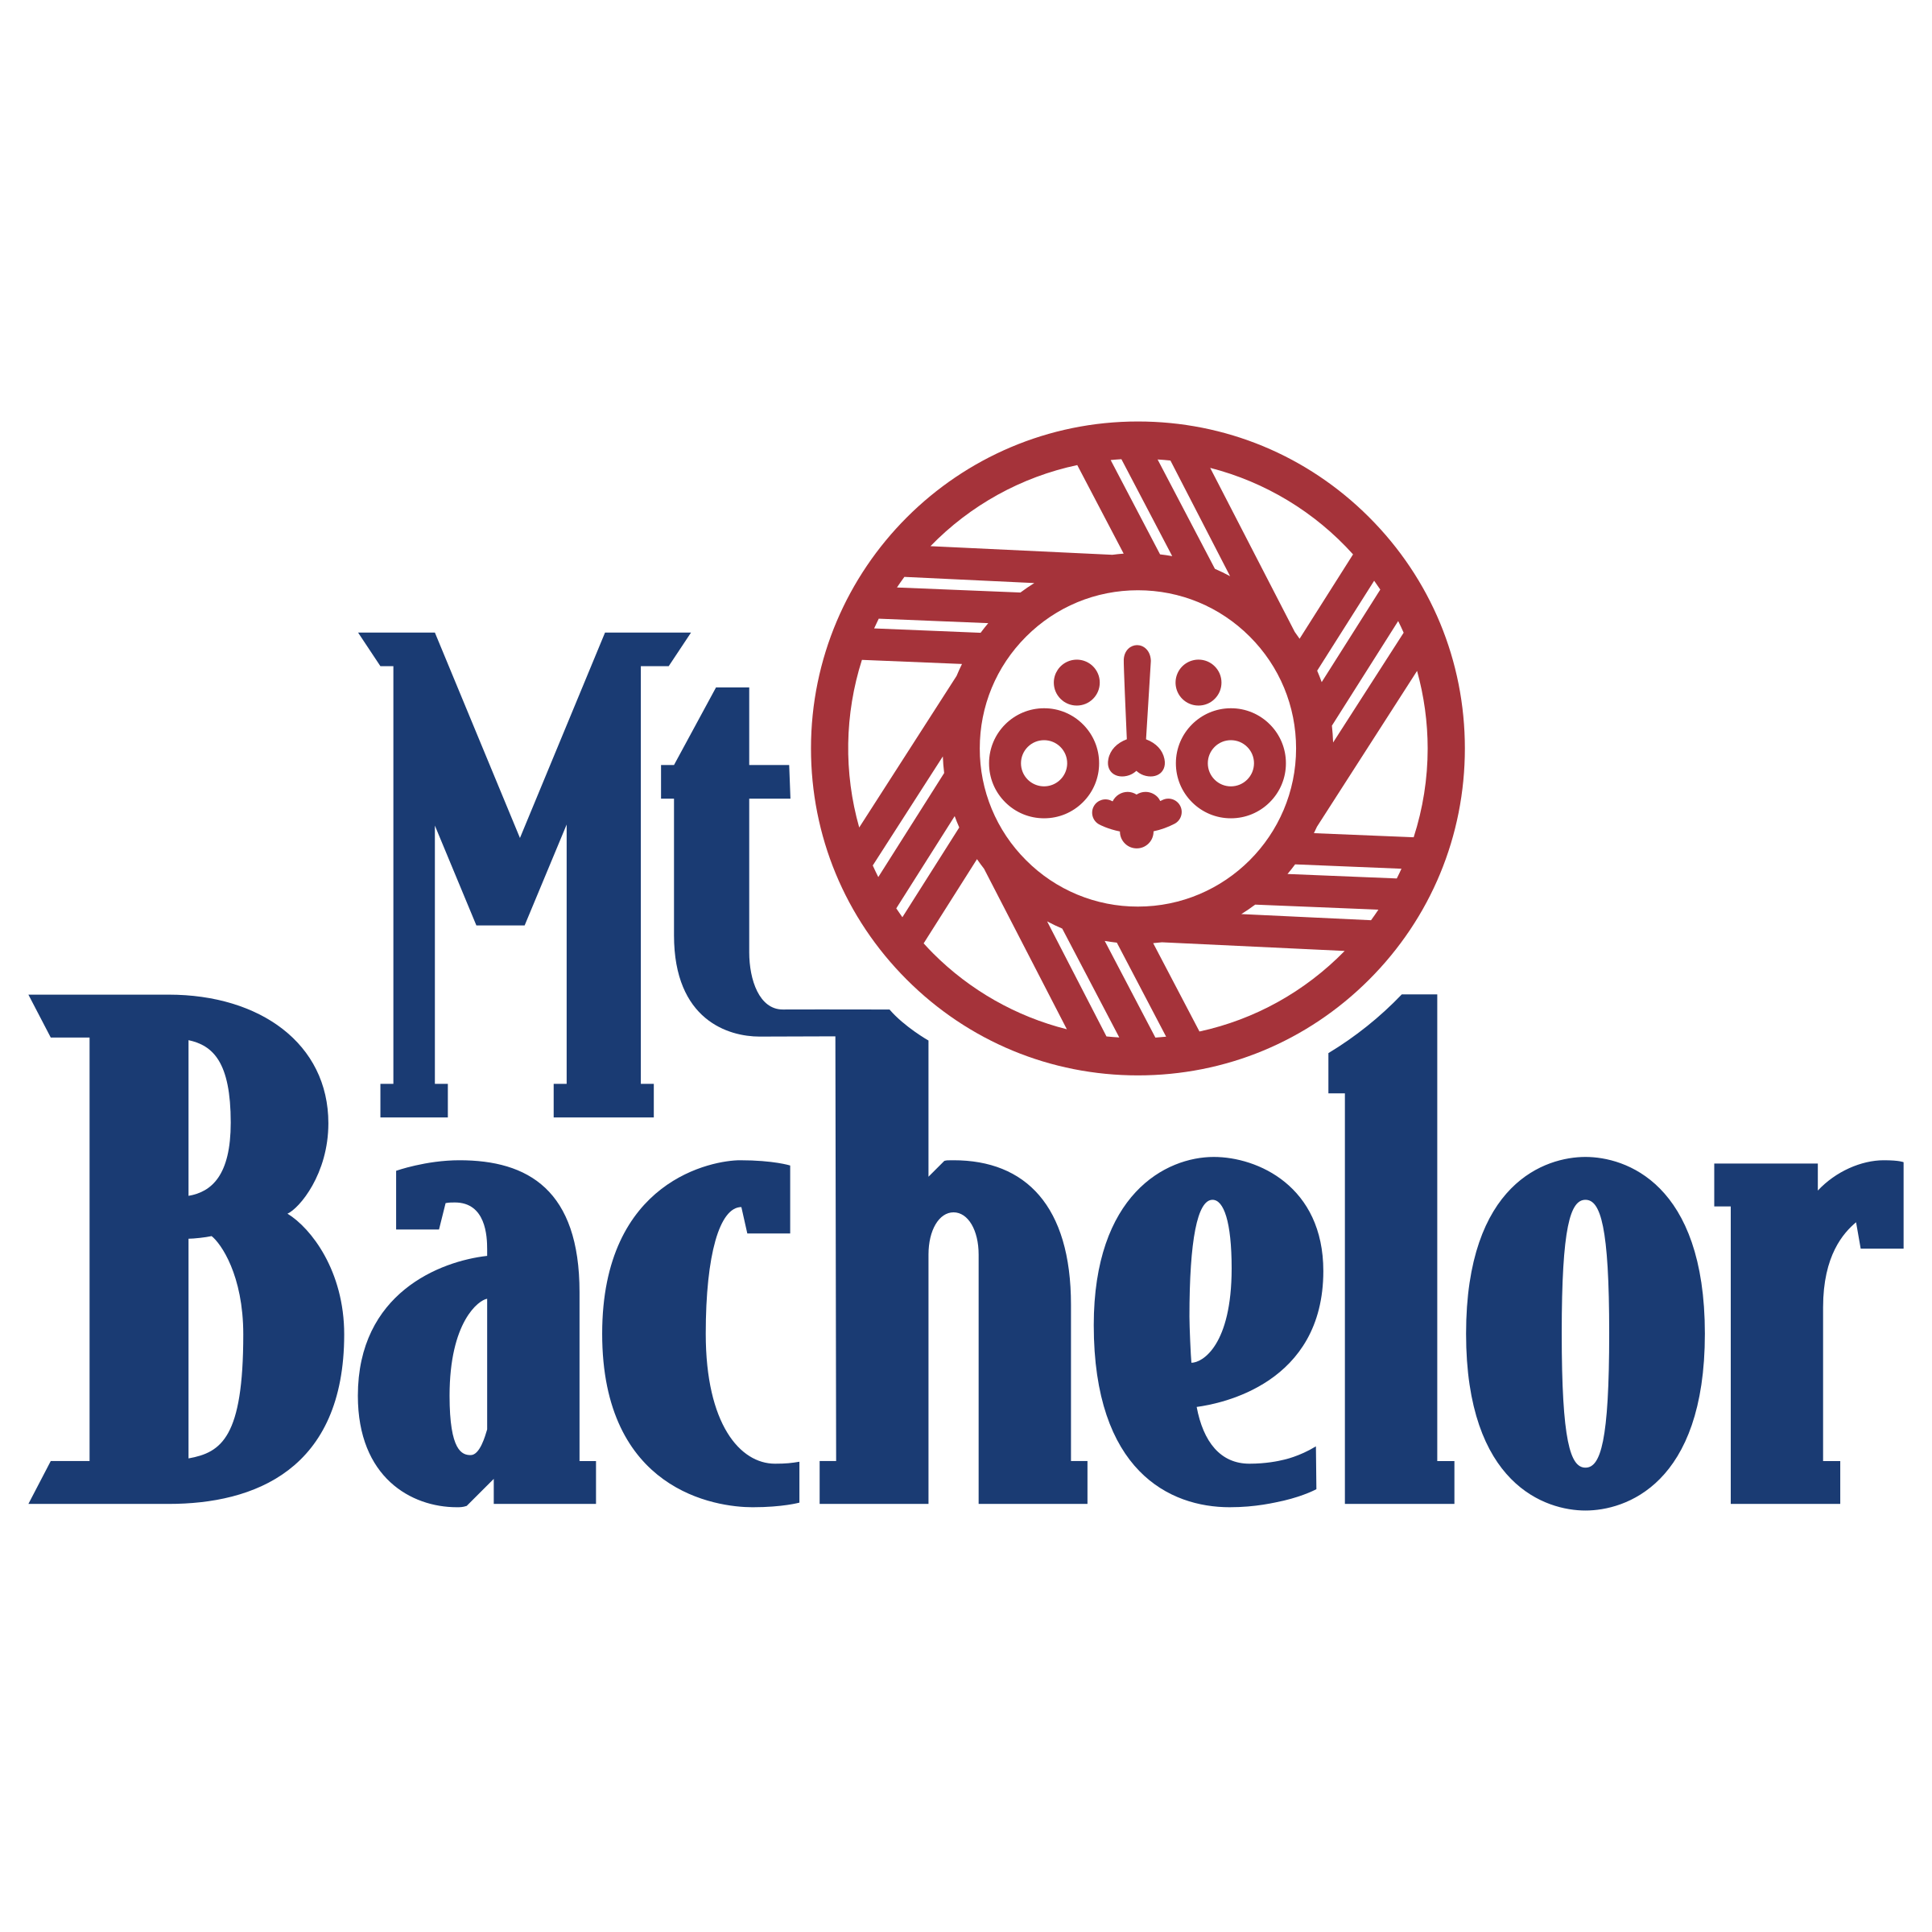 mt-bachelor-logo-png-transparent